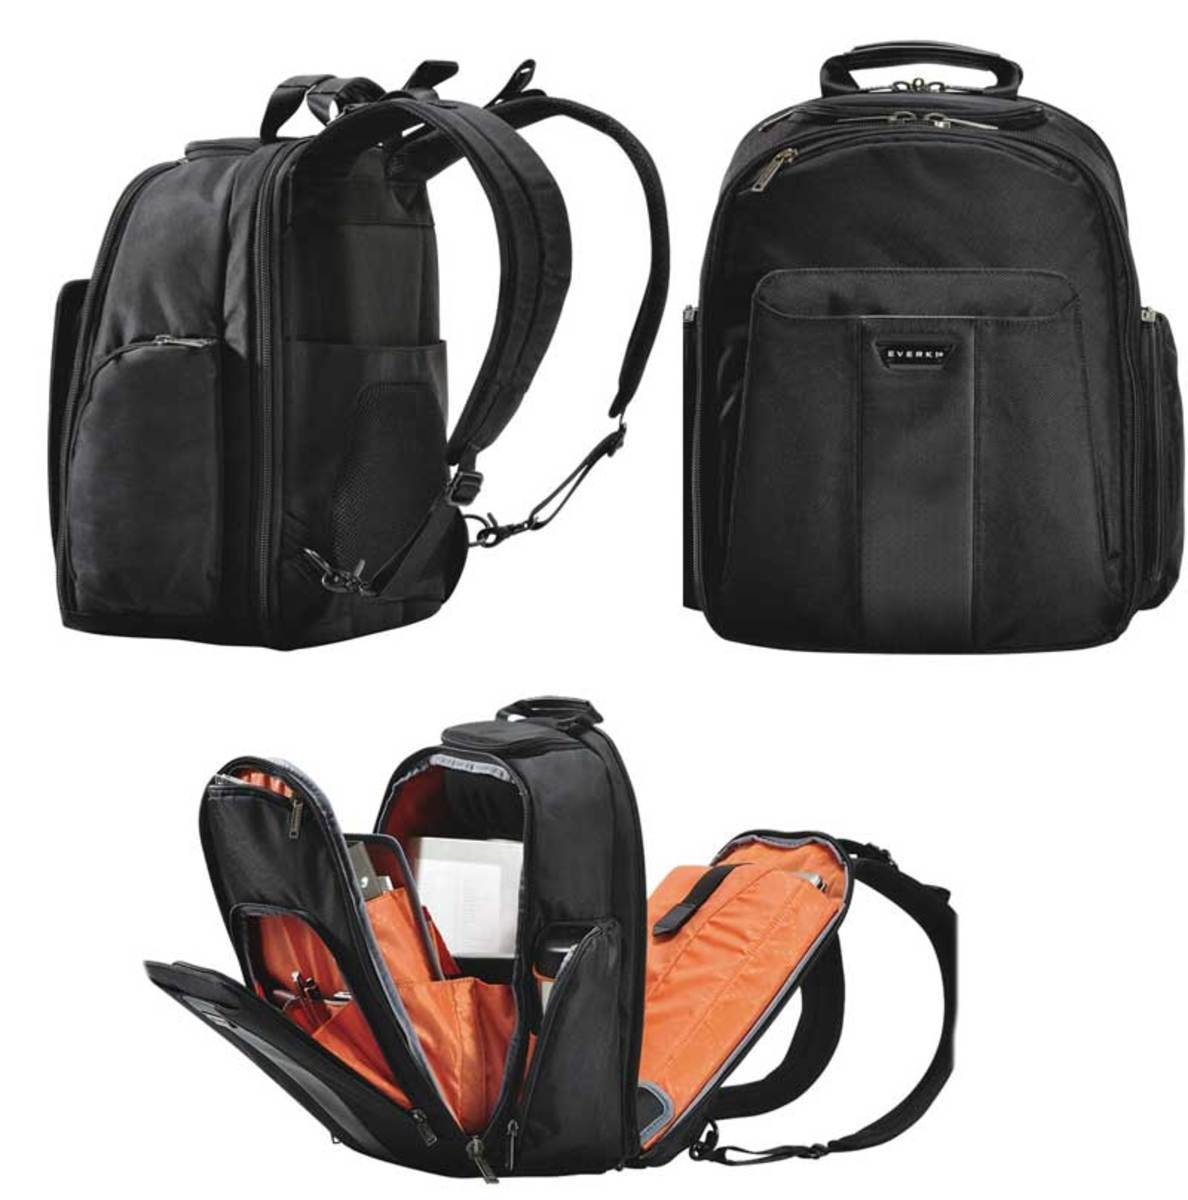 Easy access Everki backpack